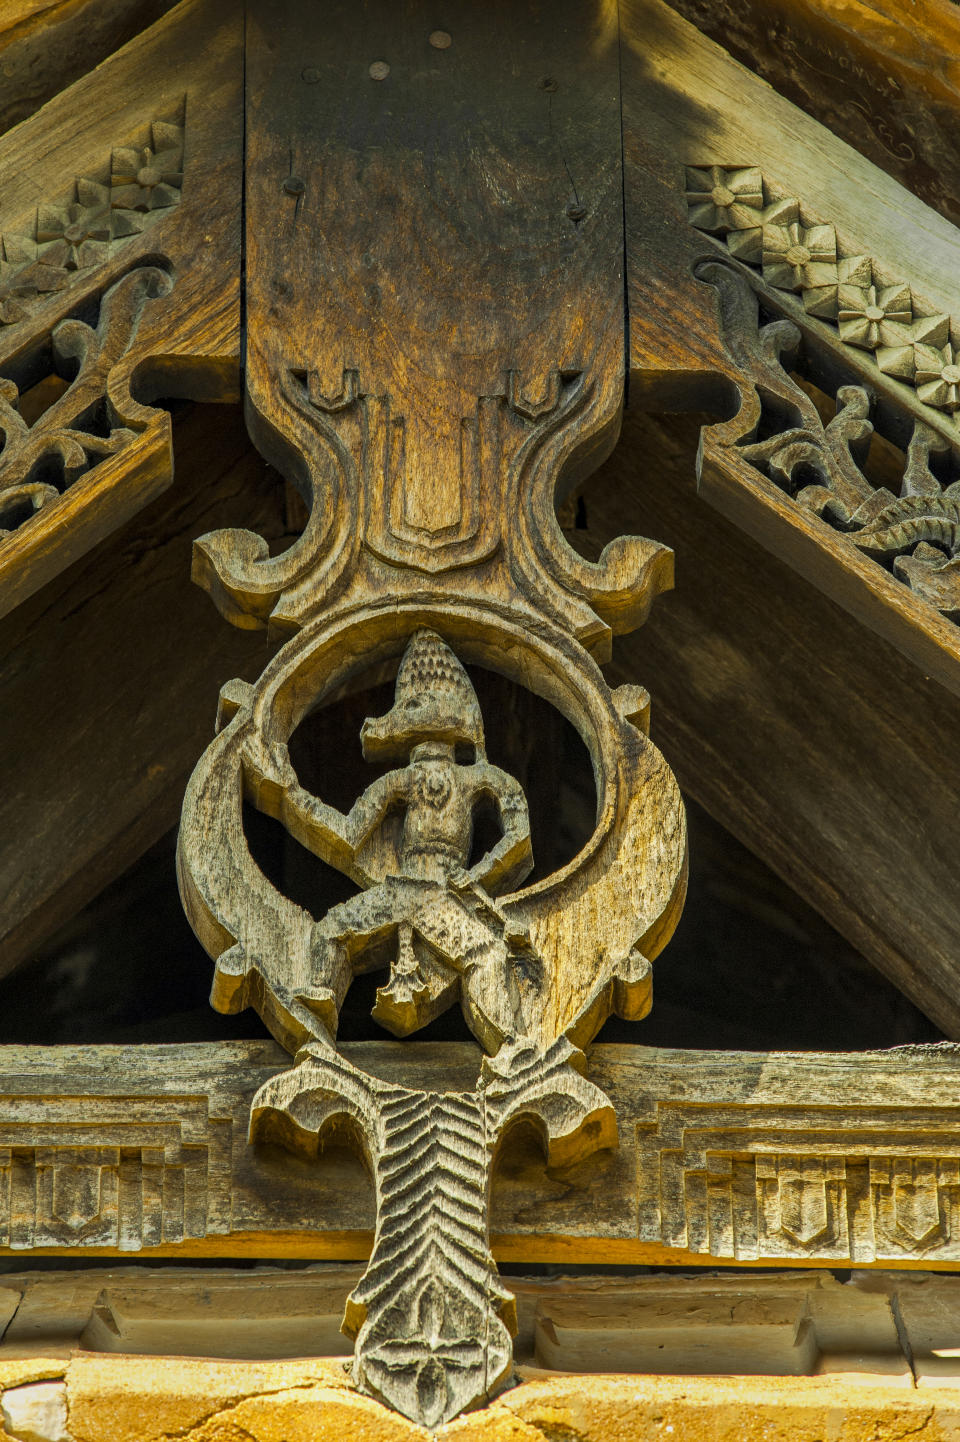 Heritage architecture wooden Hanuman Padmanabhapuram wooden palace complex-20km from Nagercoil Tamil Nadu, India